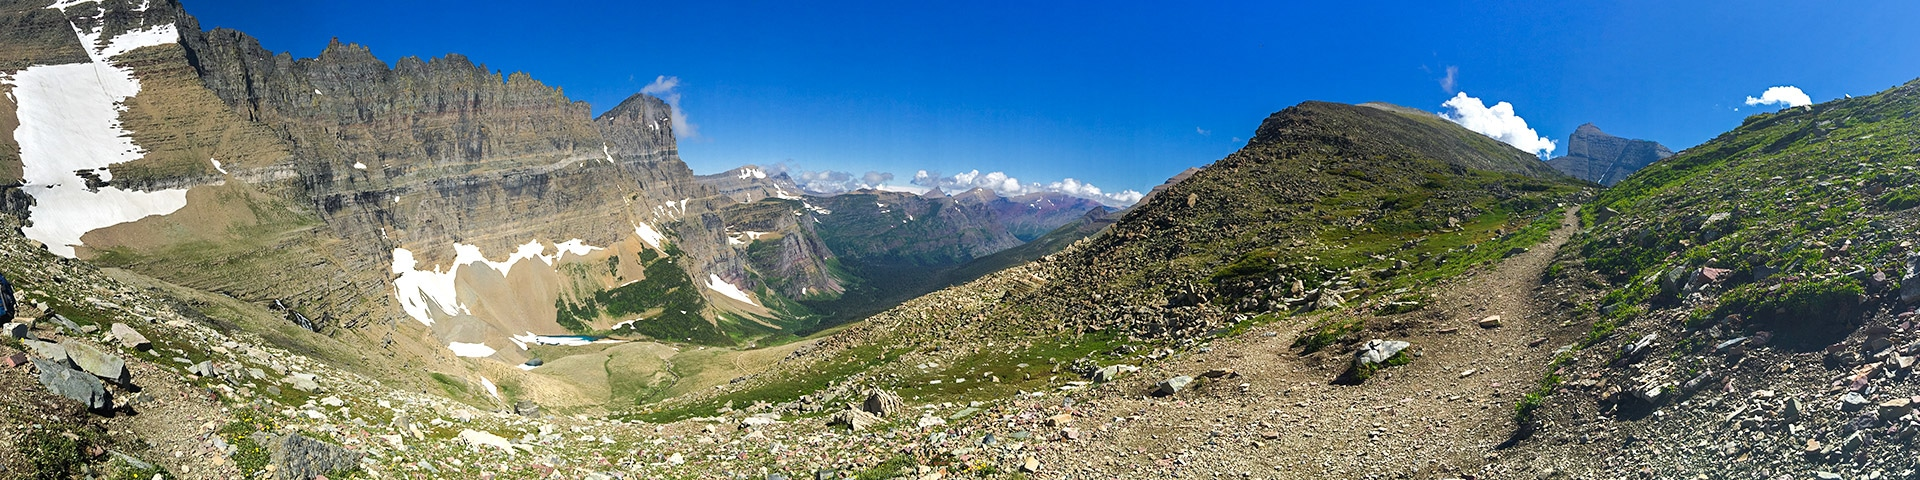 Panorama from the Piegan Pass hike in Glacier National Park, Montana